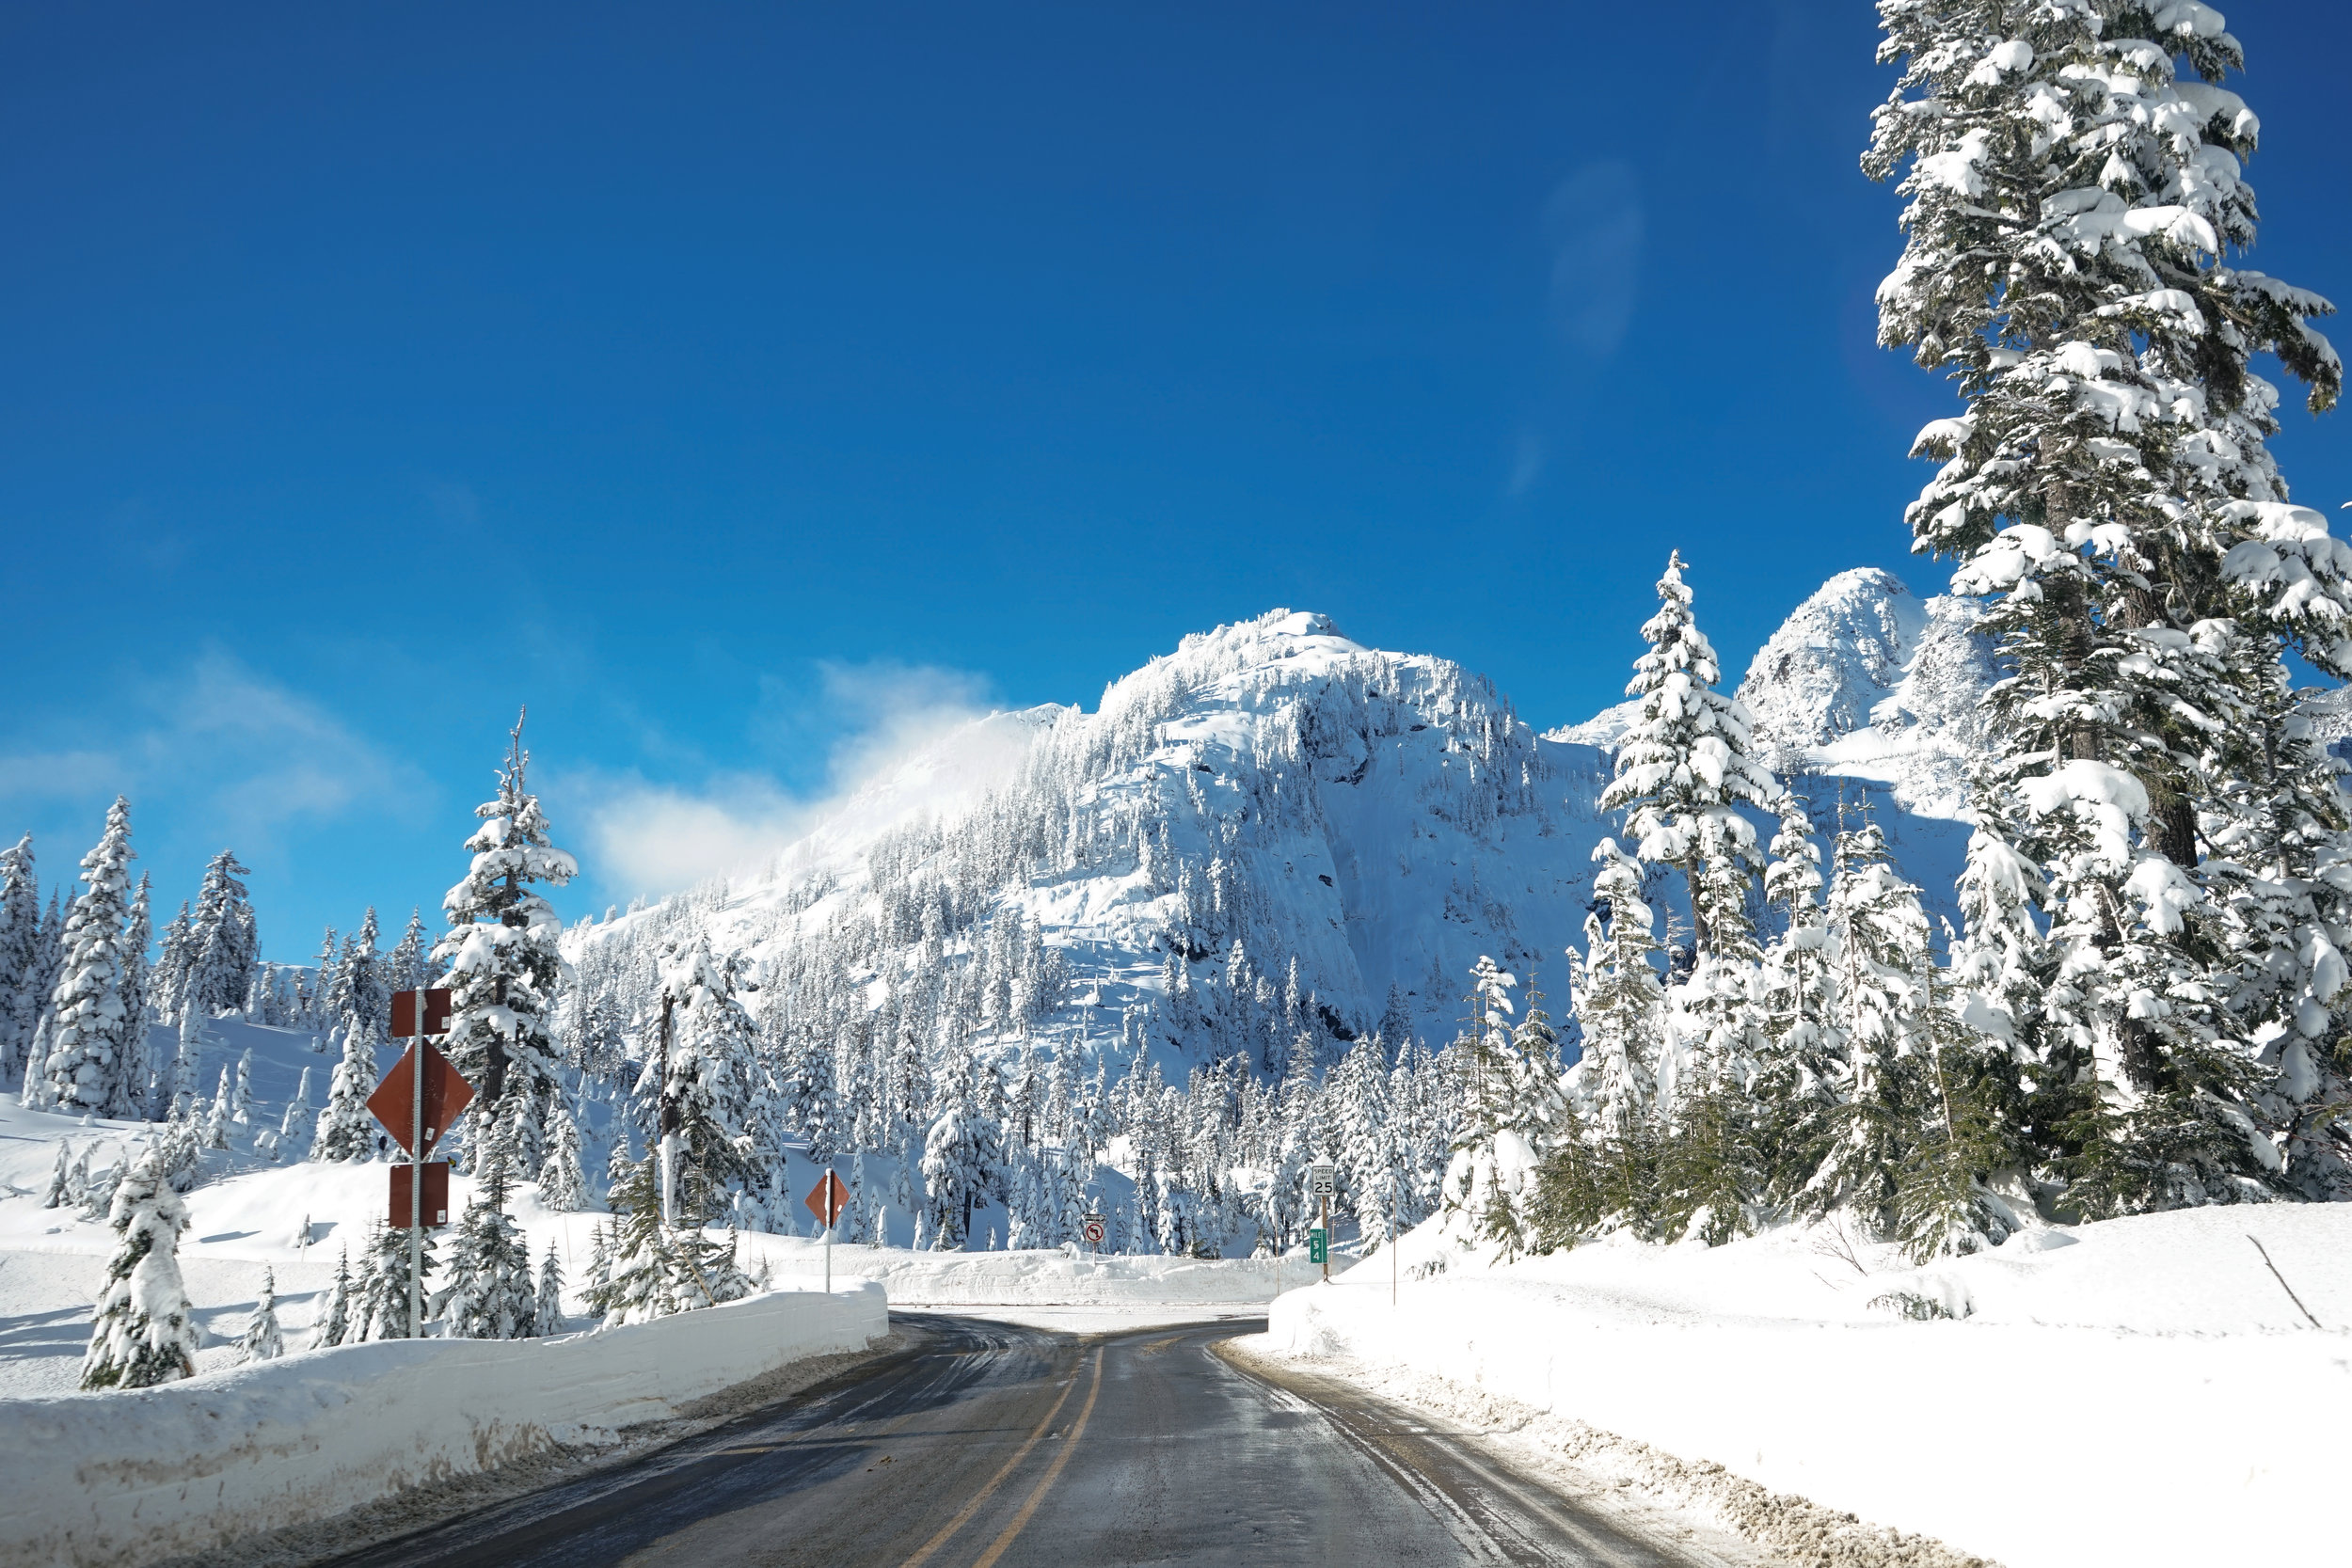 The road up to Artist Point